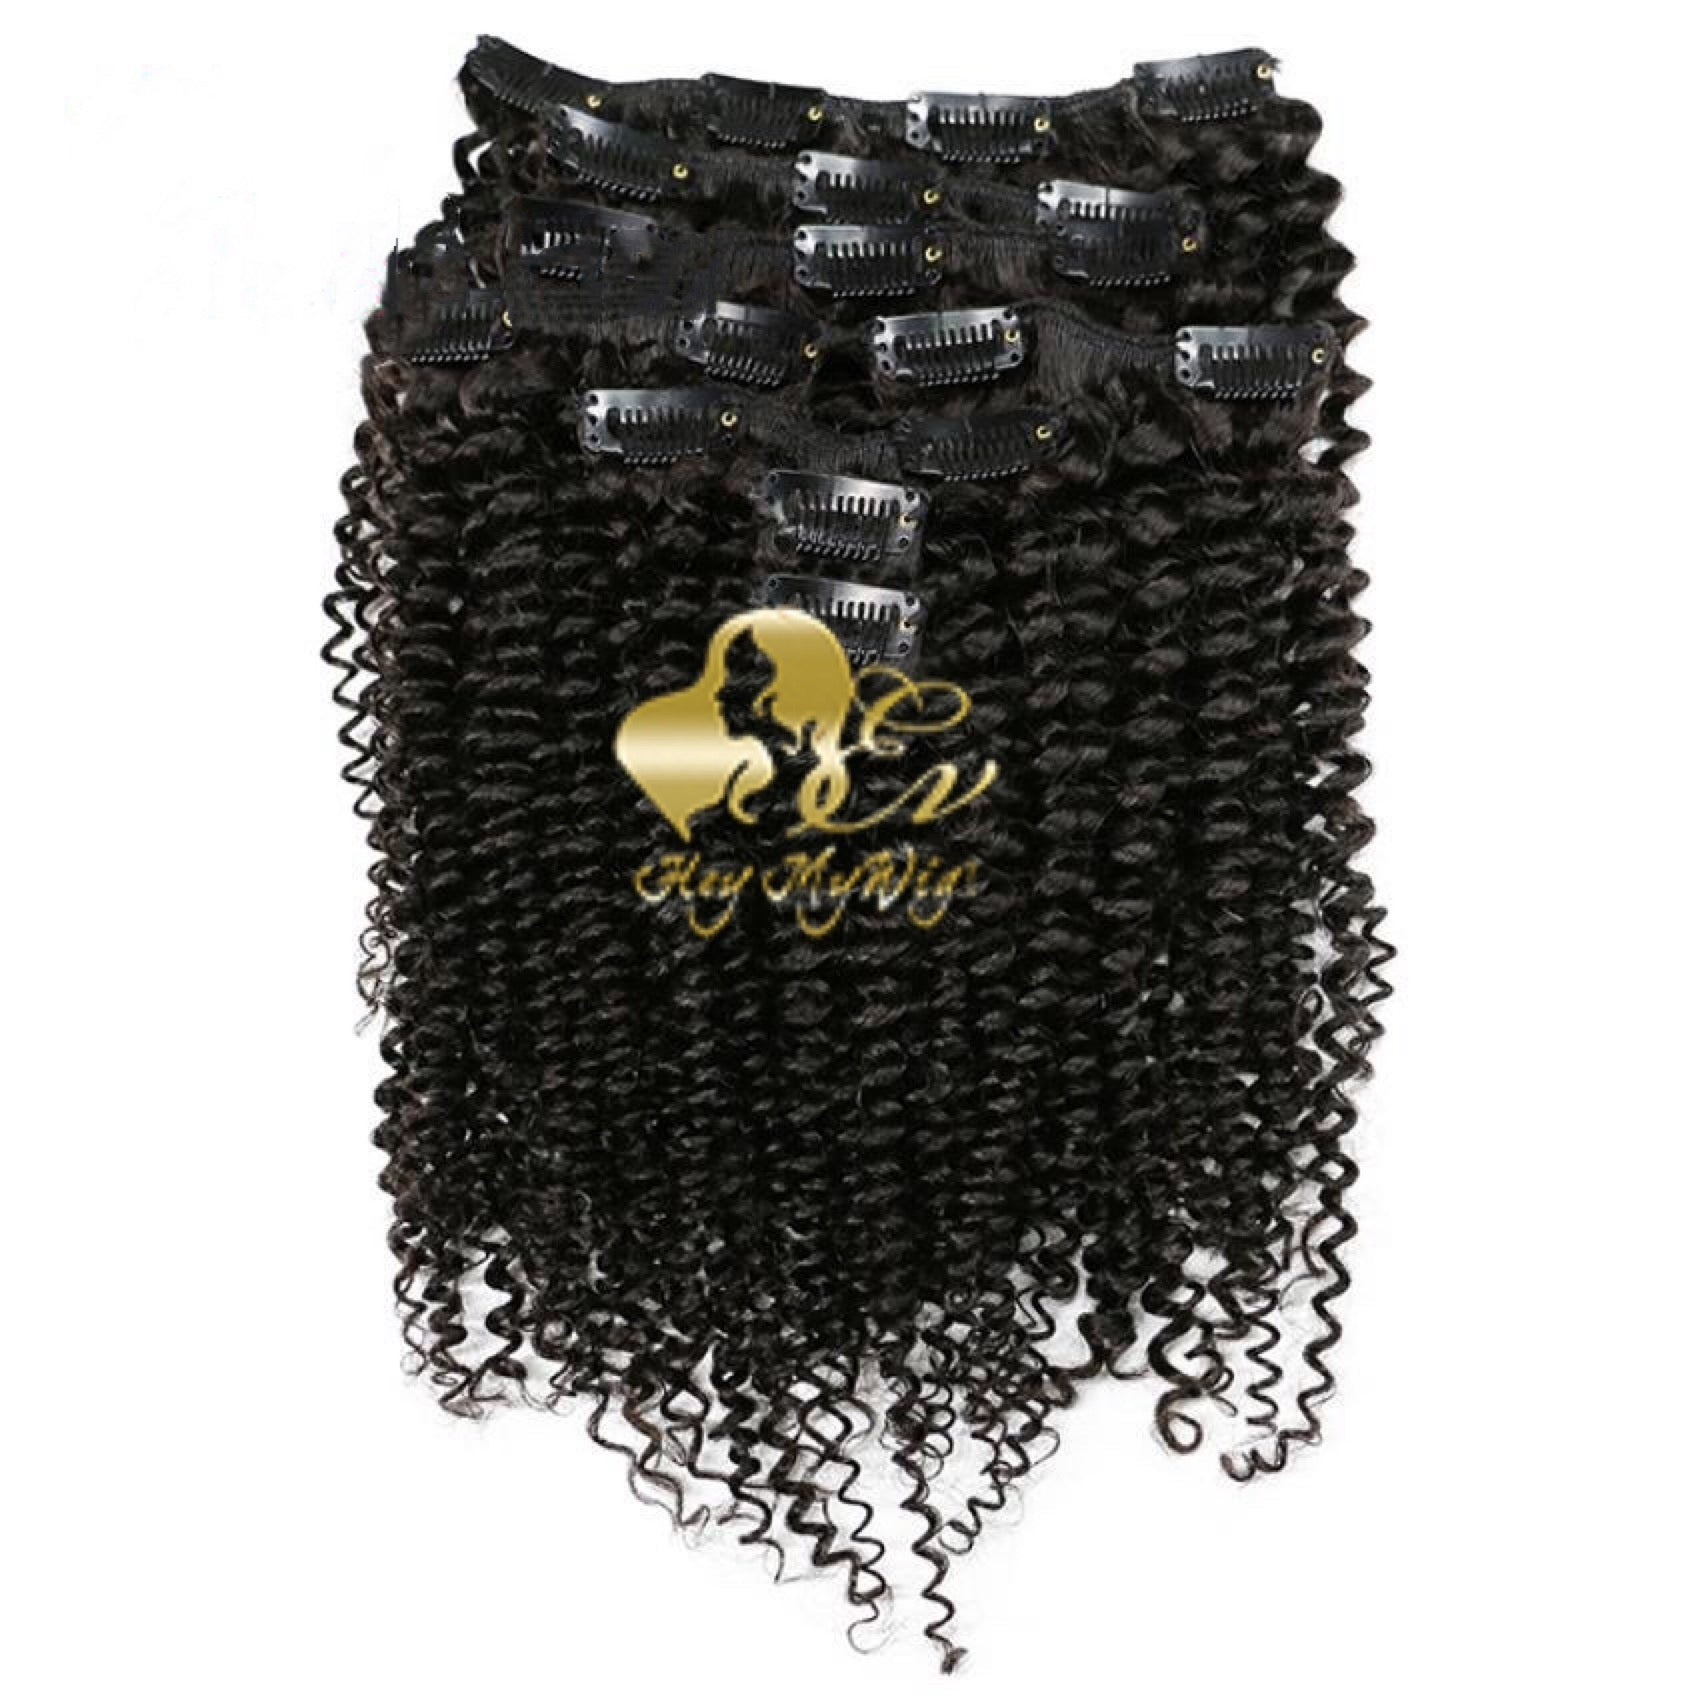 Clip in human hair extension 4A 4B Afro kinky curly texture hair - heymywig.com